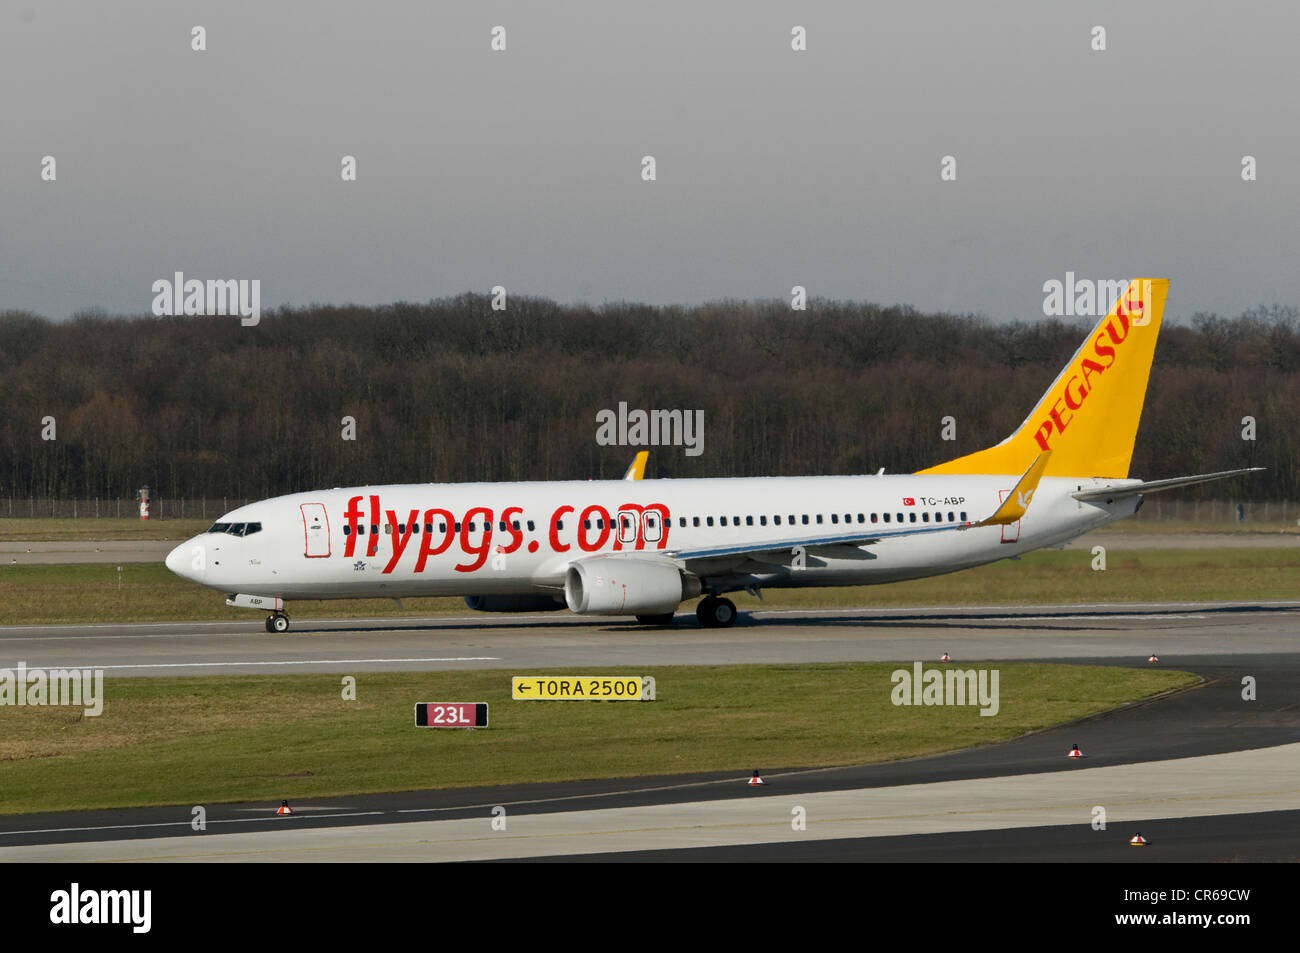 Turkish Pegasus Airlines Boeing 737-82R with winglets, runway sign TORA 2500, Takeoff Run Available, the maximum - Stock Image